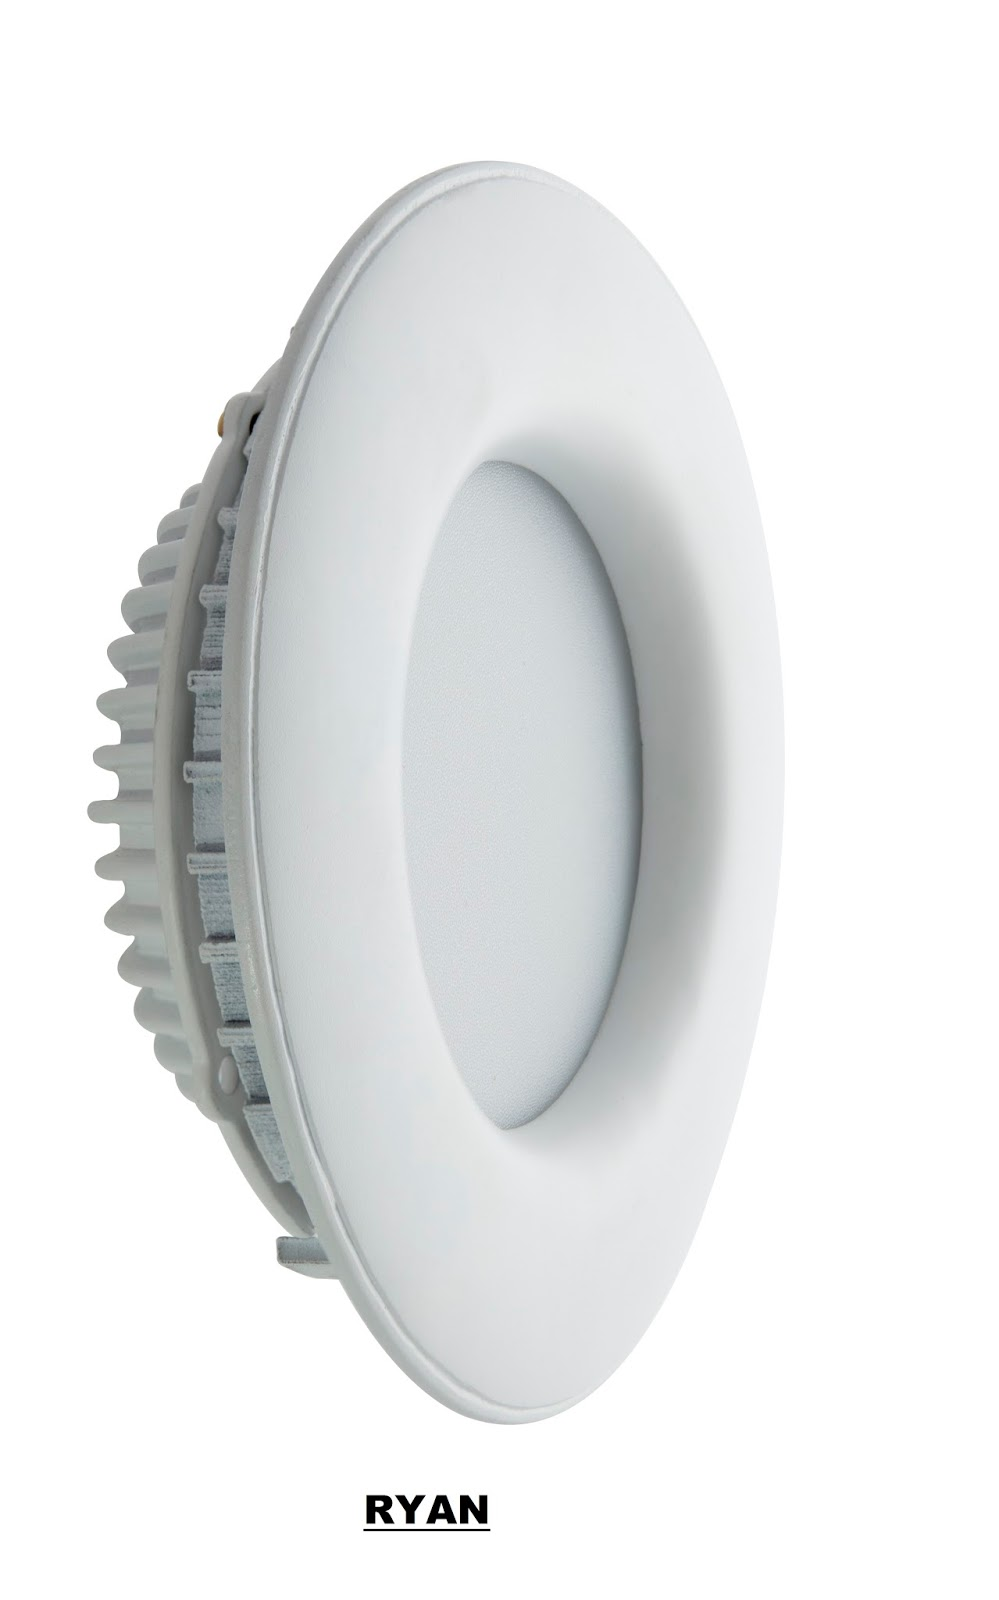 Lights For Home And Office In India Interior Led Ceiling At Affordable Low Price With Best Quality Indian Market